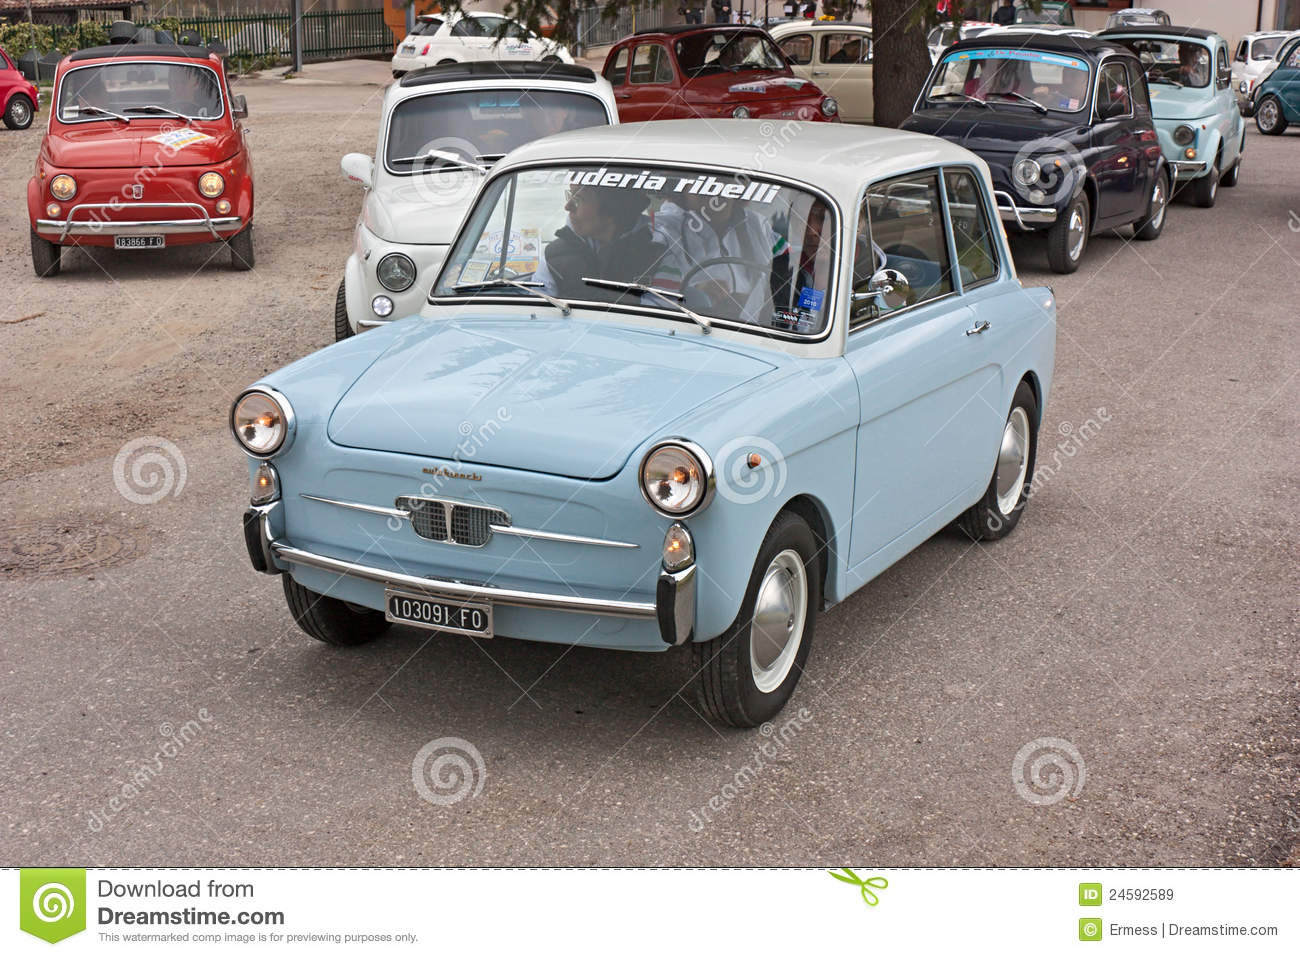 Old italian economy car editorial stock image. Image of restored ...